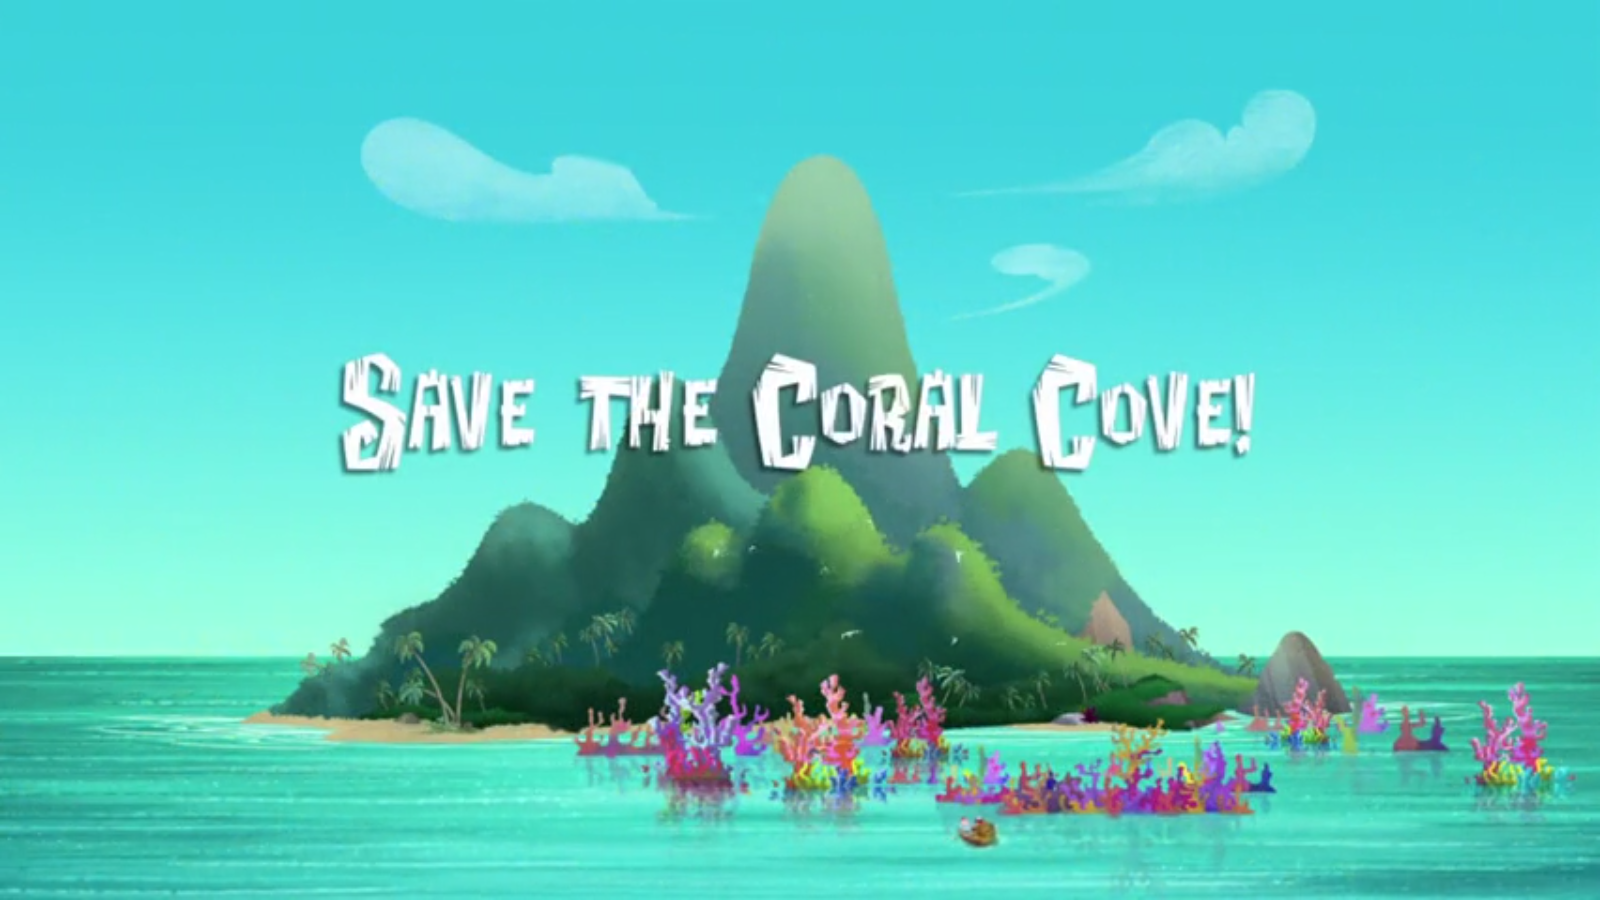 save the coral cove jake and the never land pirates